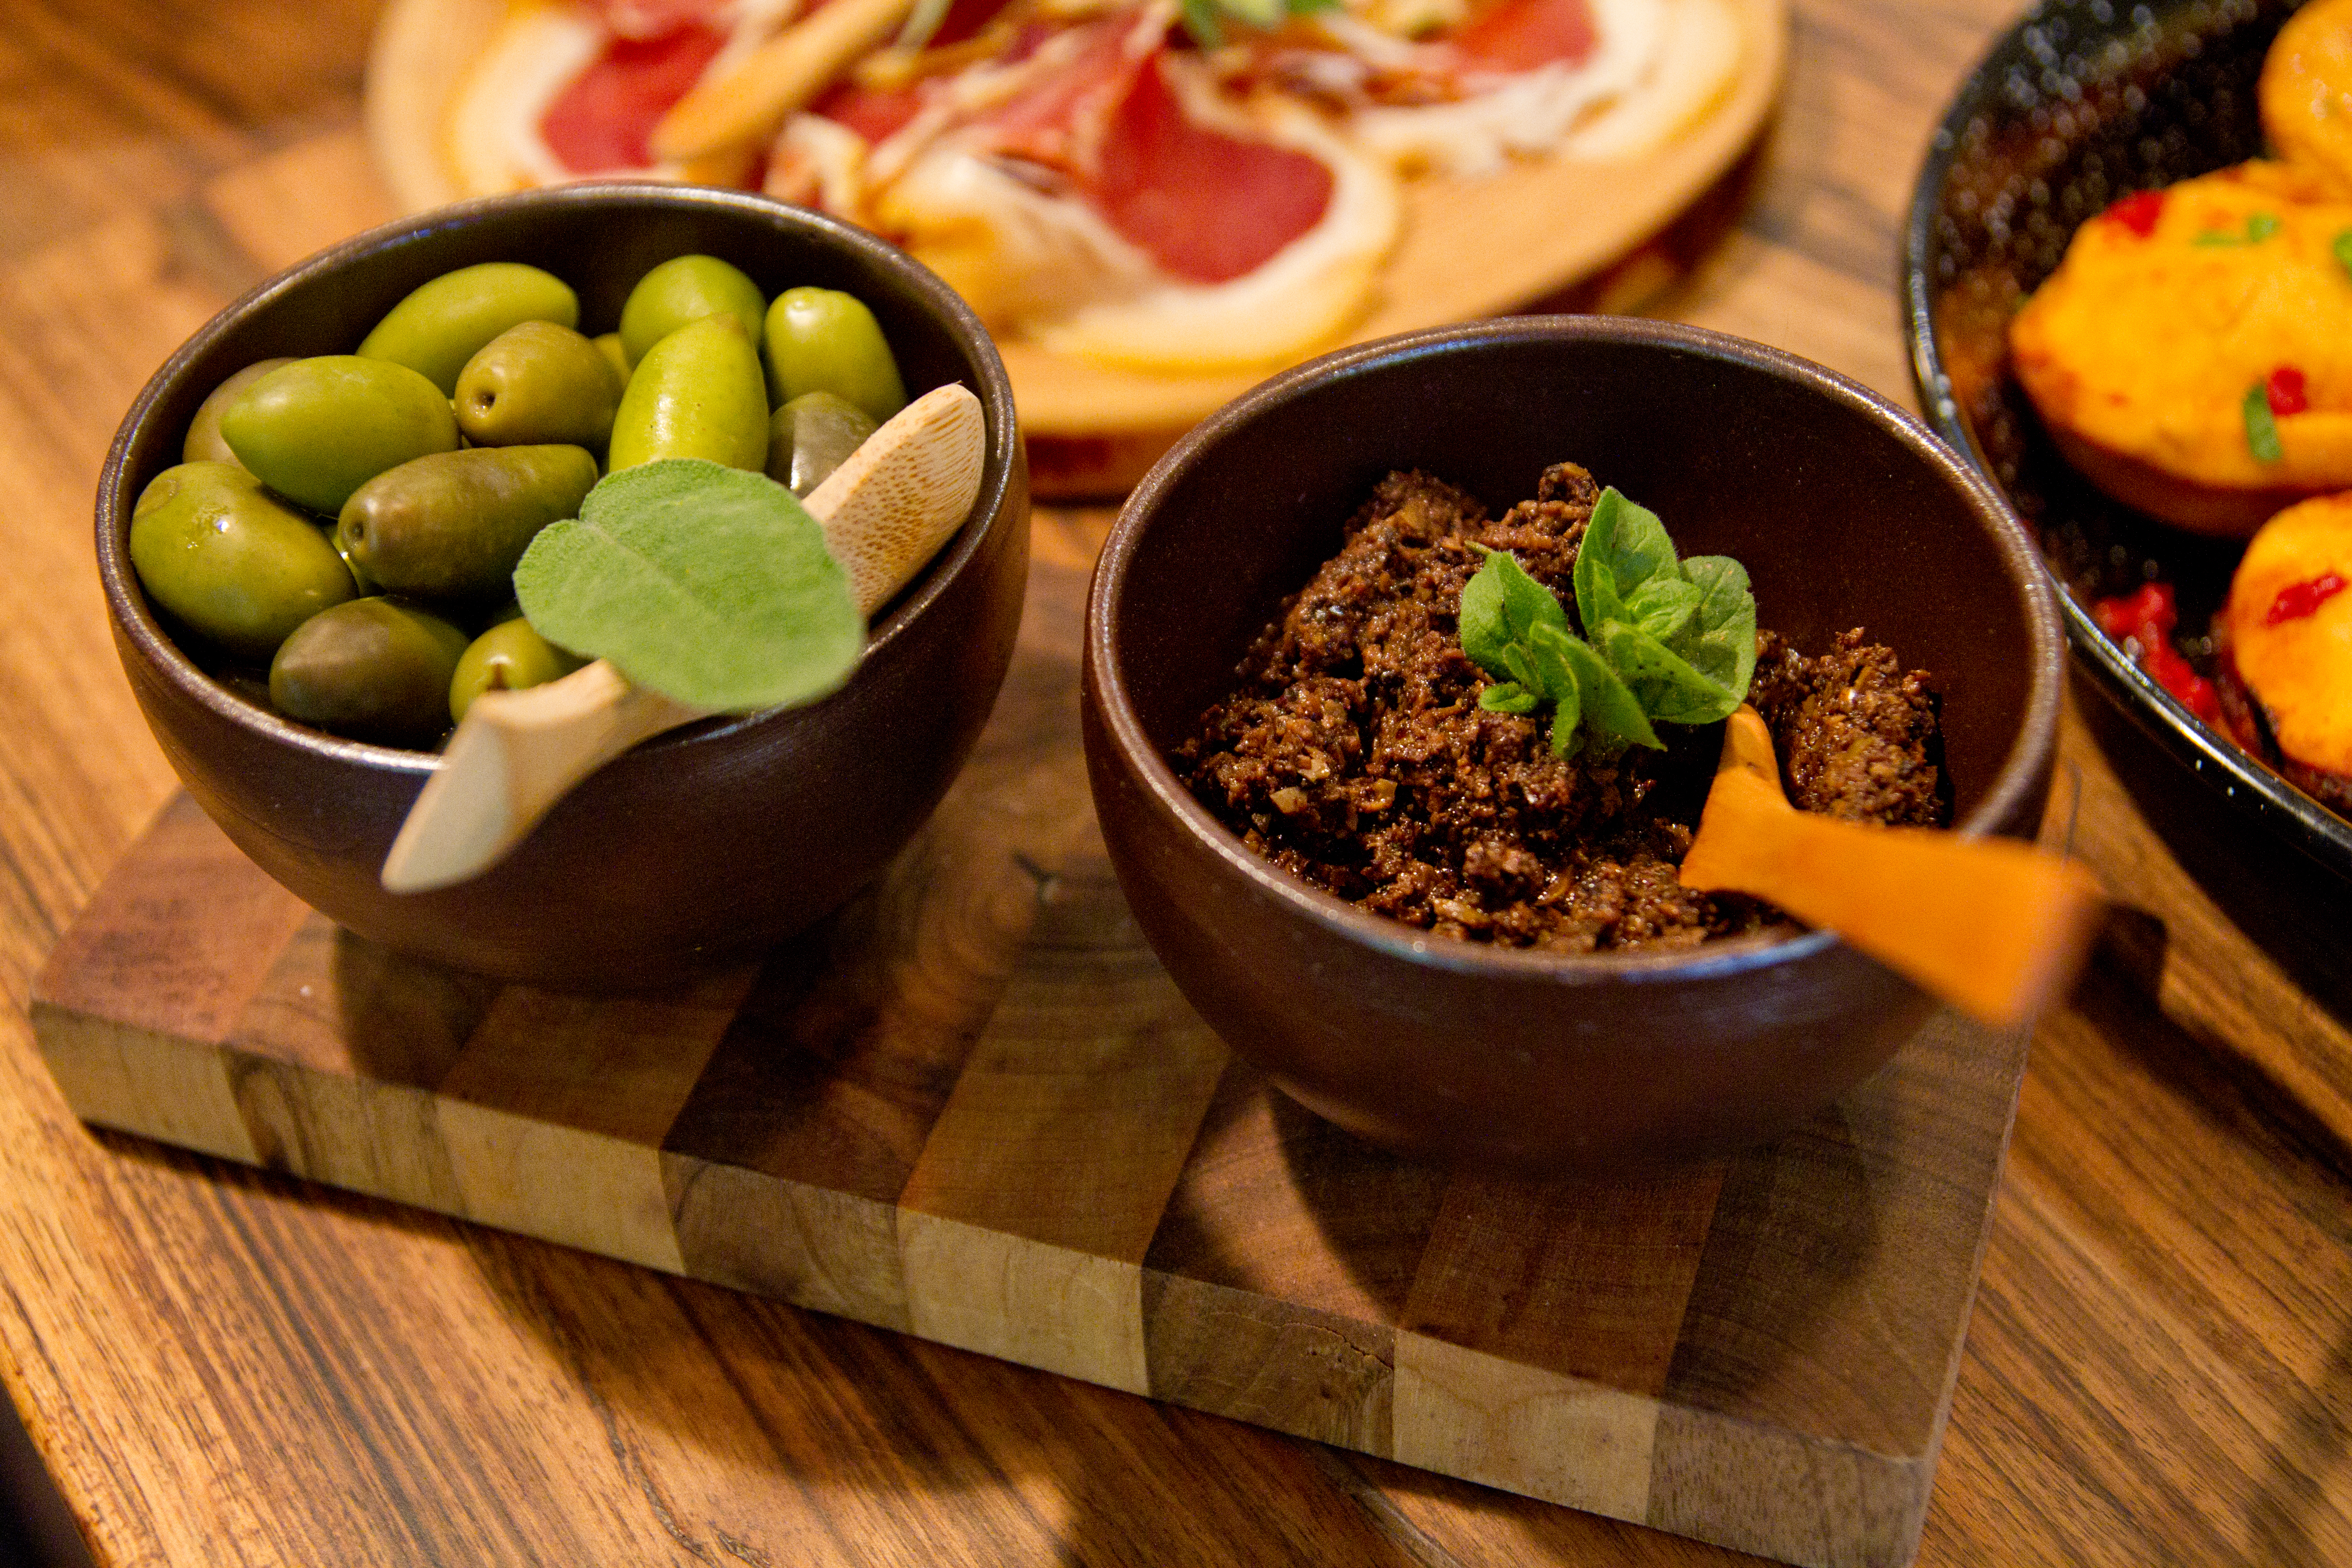 tapenade and olives